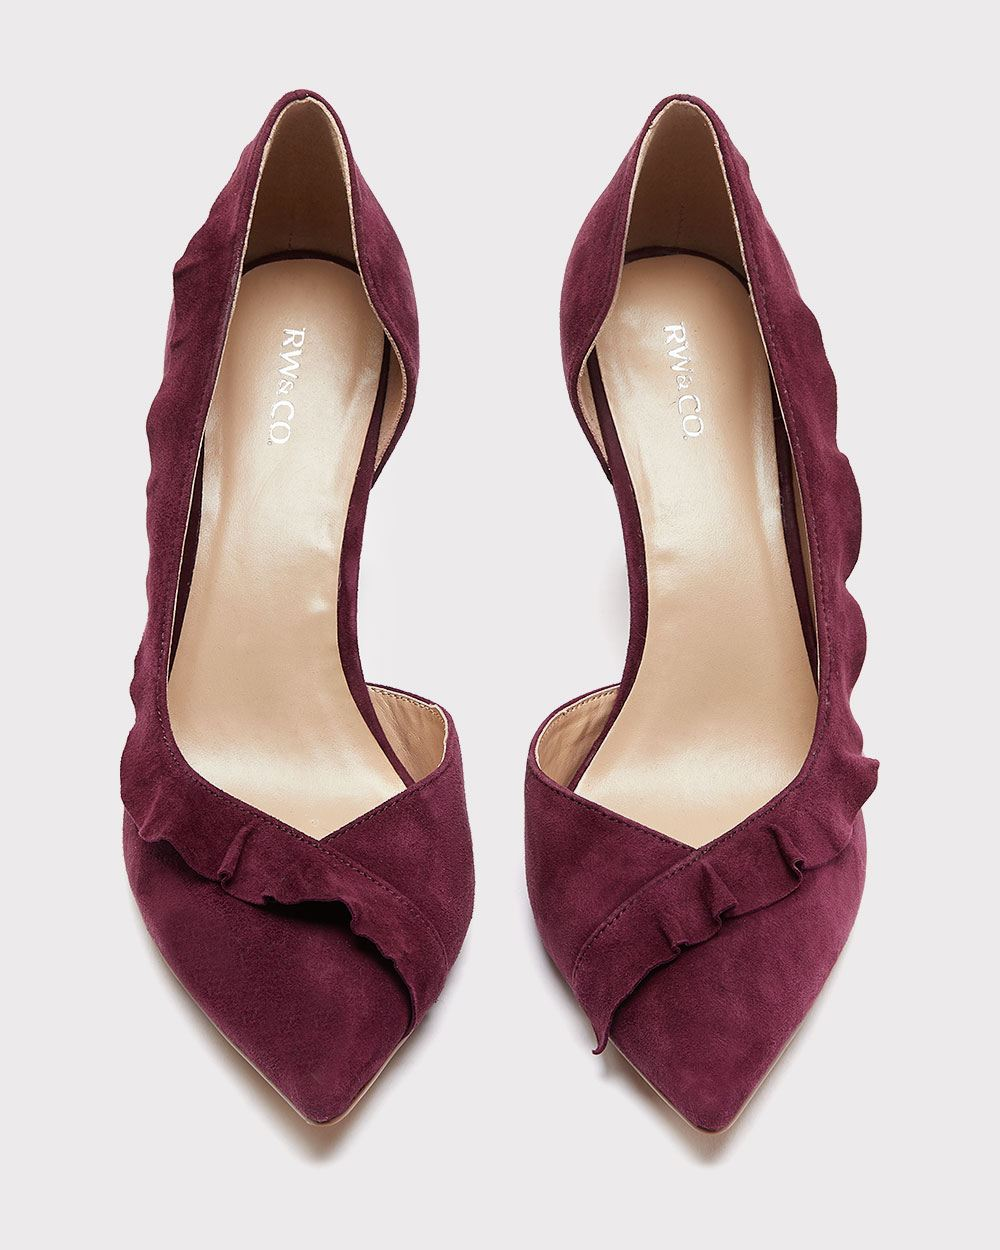 Suede Ruffled Pump